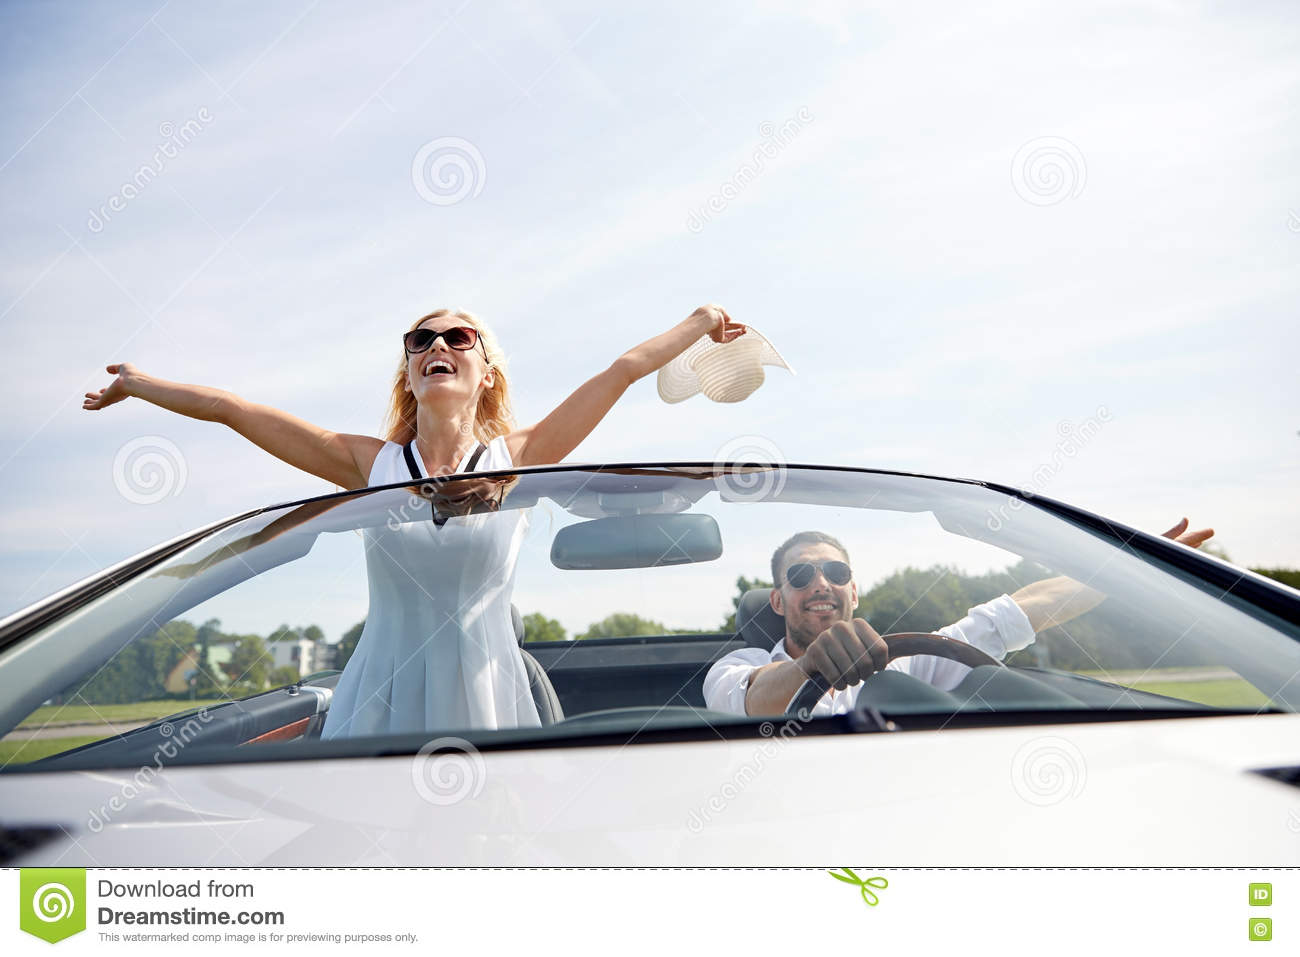 dating guy no car For guys having no car can put a damper on your dating life, but only if you let it like many young men i once lost my driver's license due to some small bad decisions and i had to get rid of my car, here's how i kept my dating life active and fun.